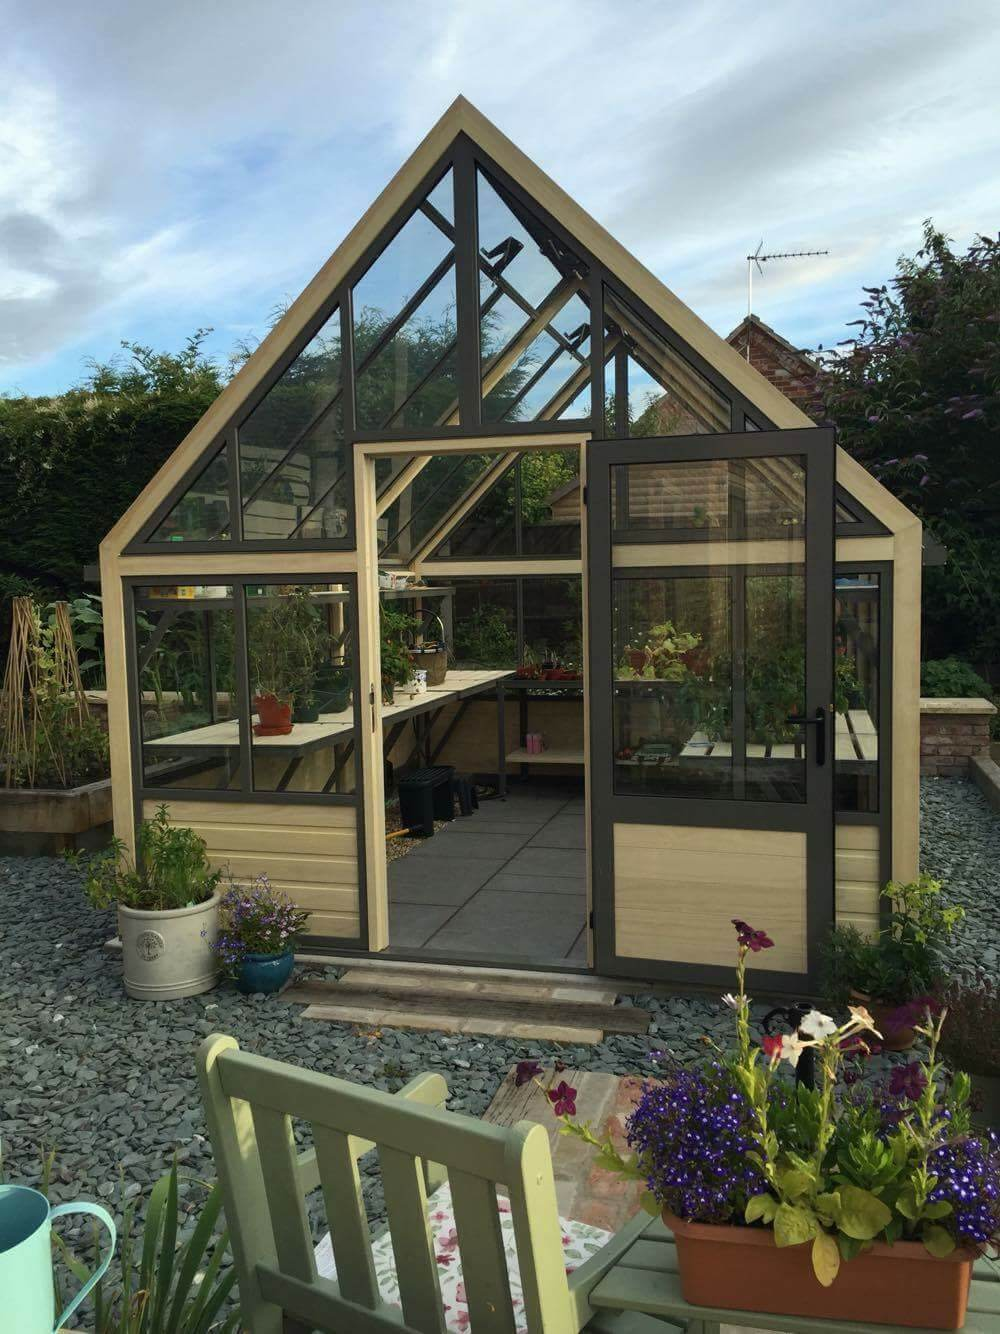 Large greenhouse with door open